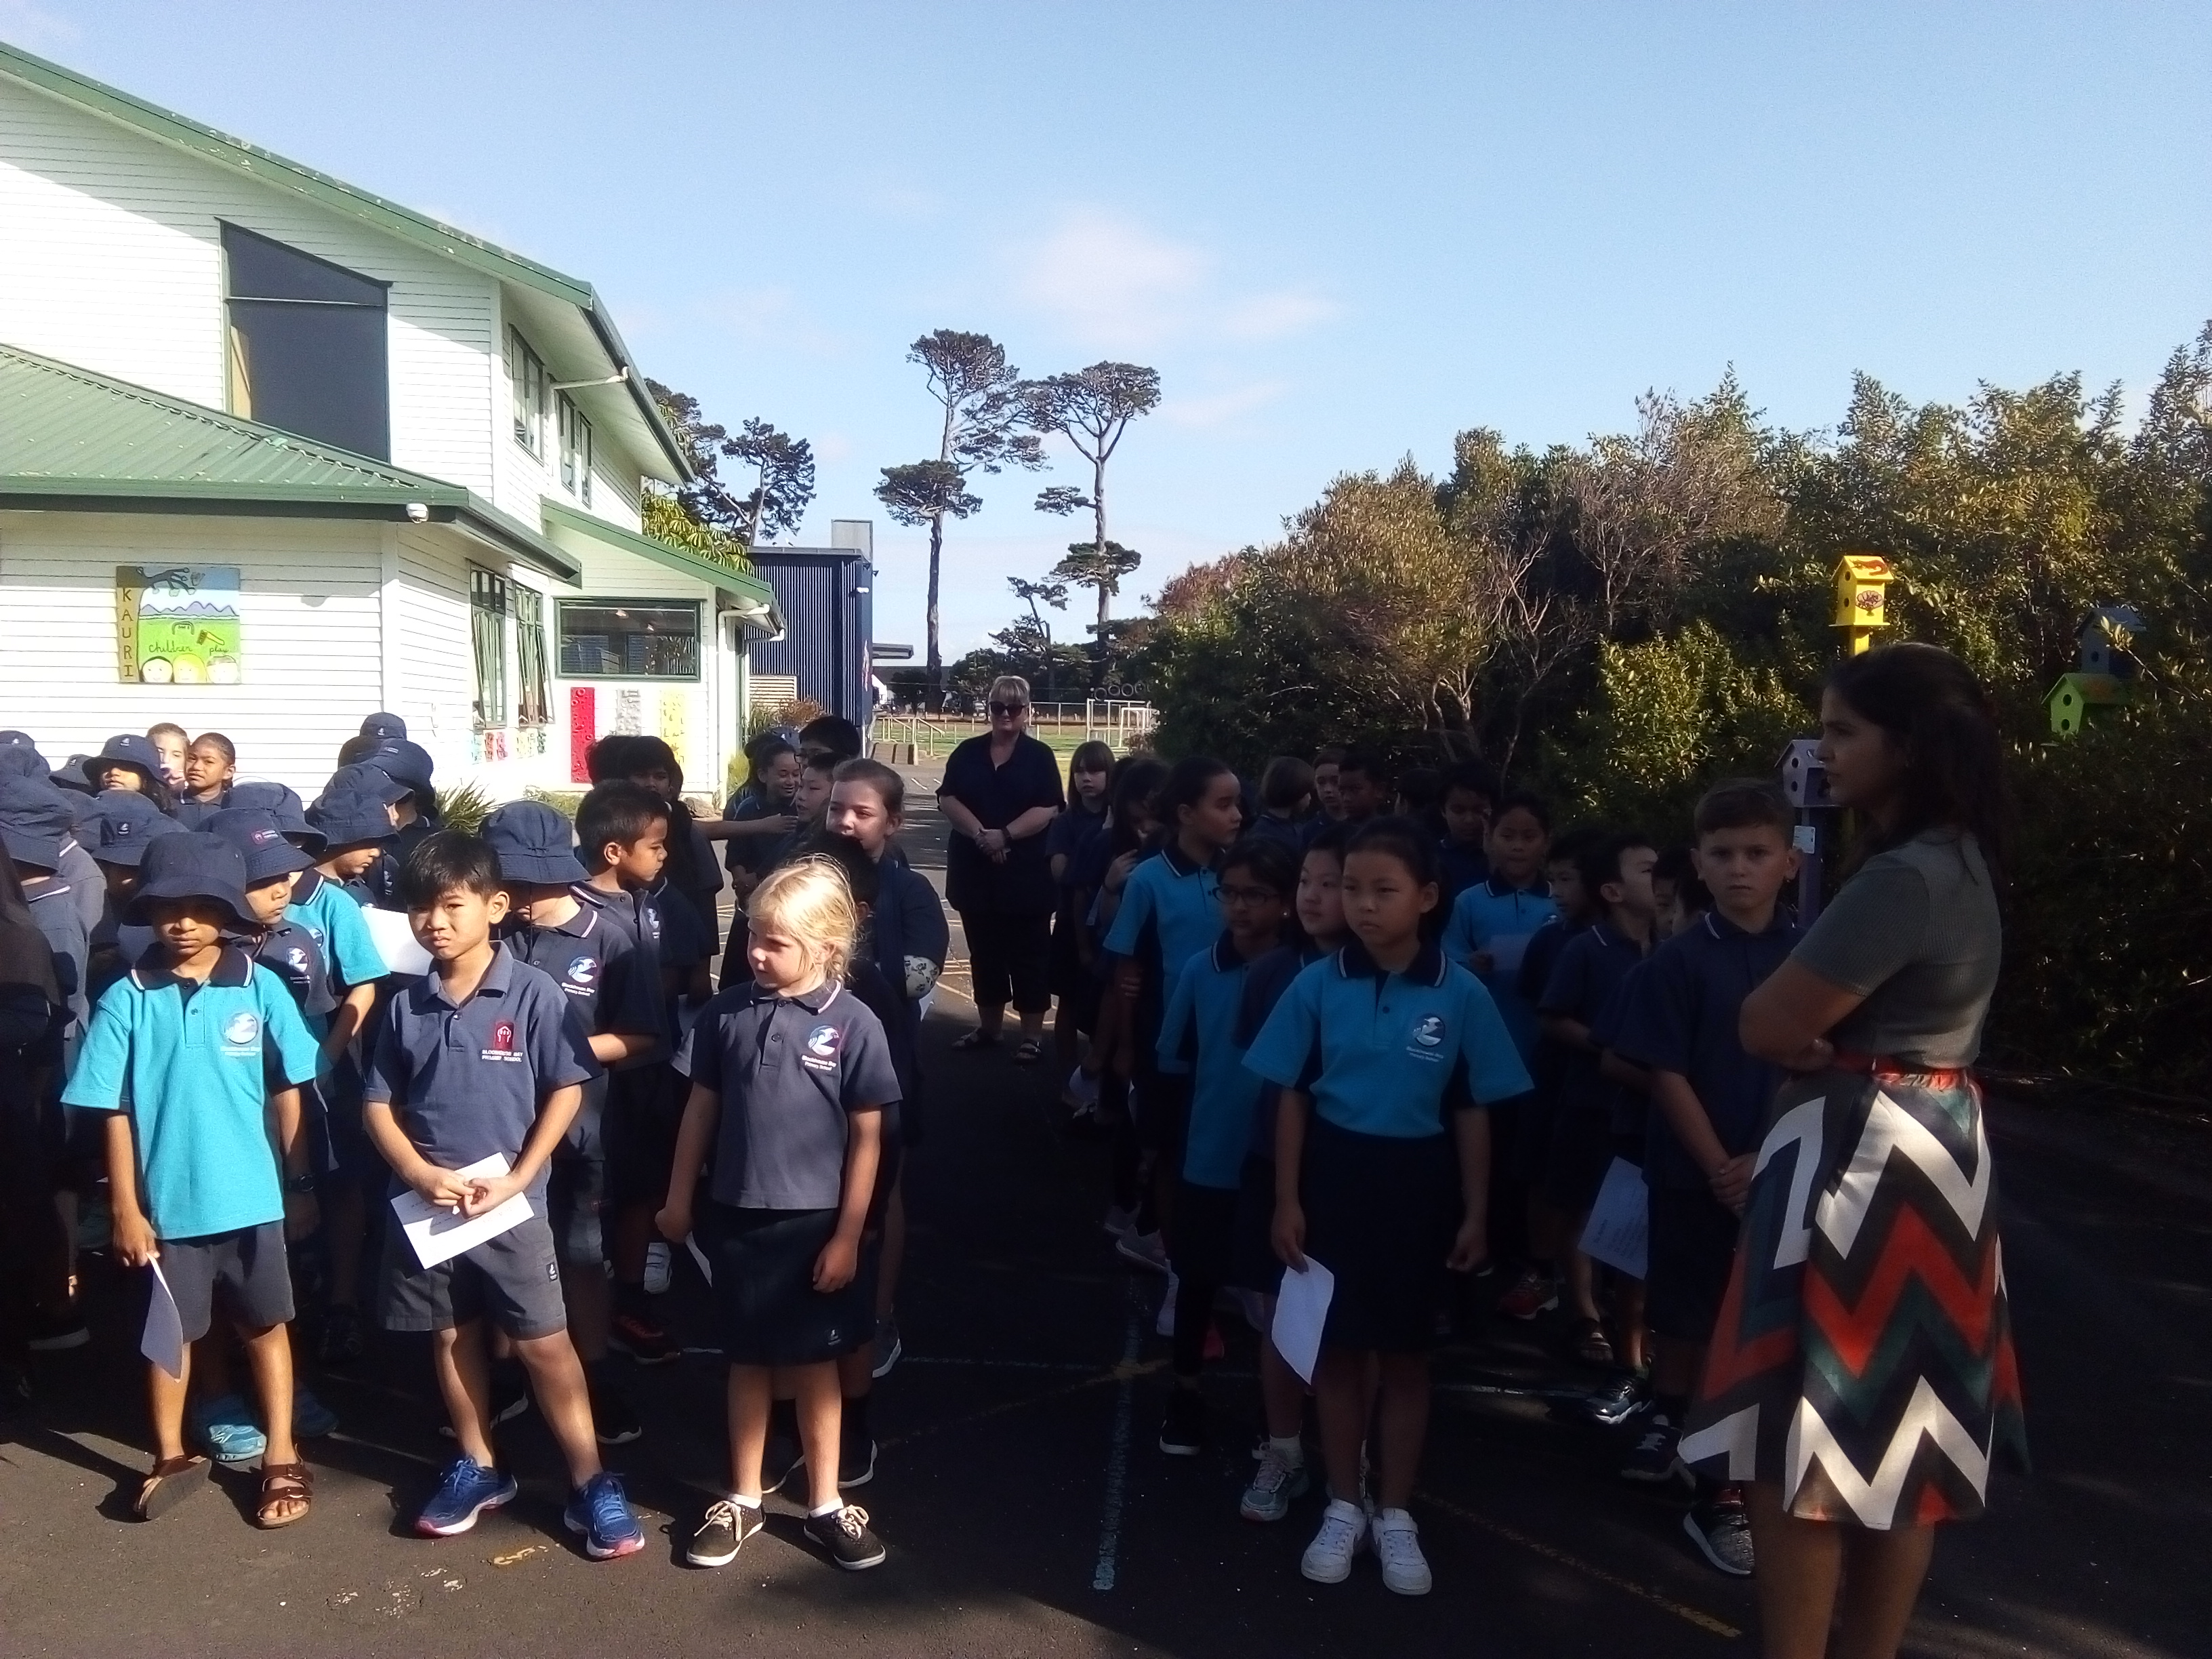 Blockhouse Bay Primary School - Welcome to Rimu 2019